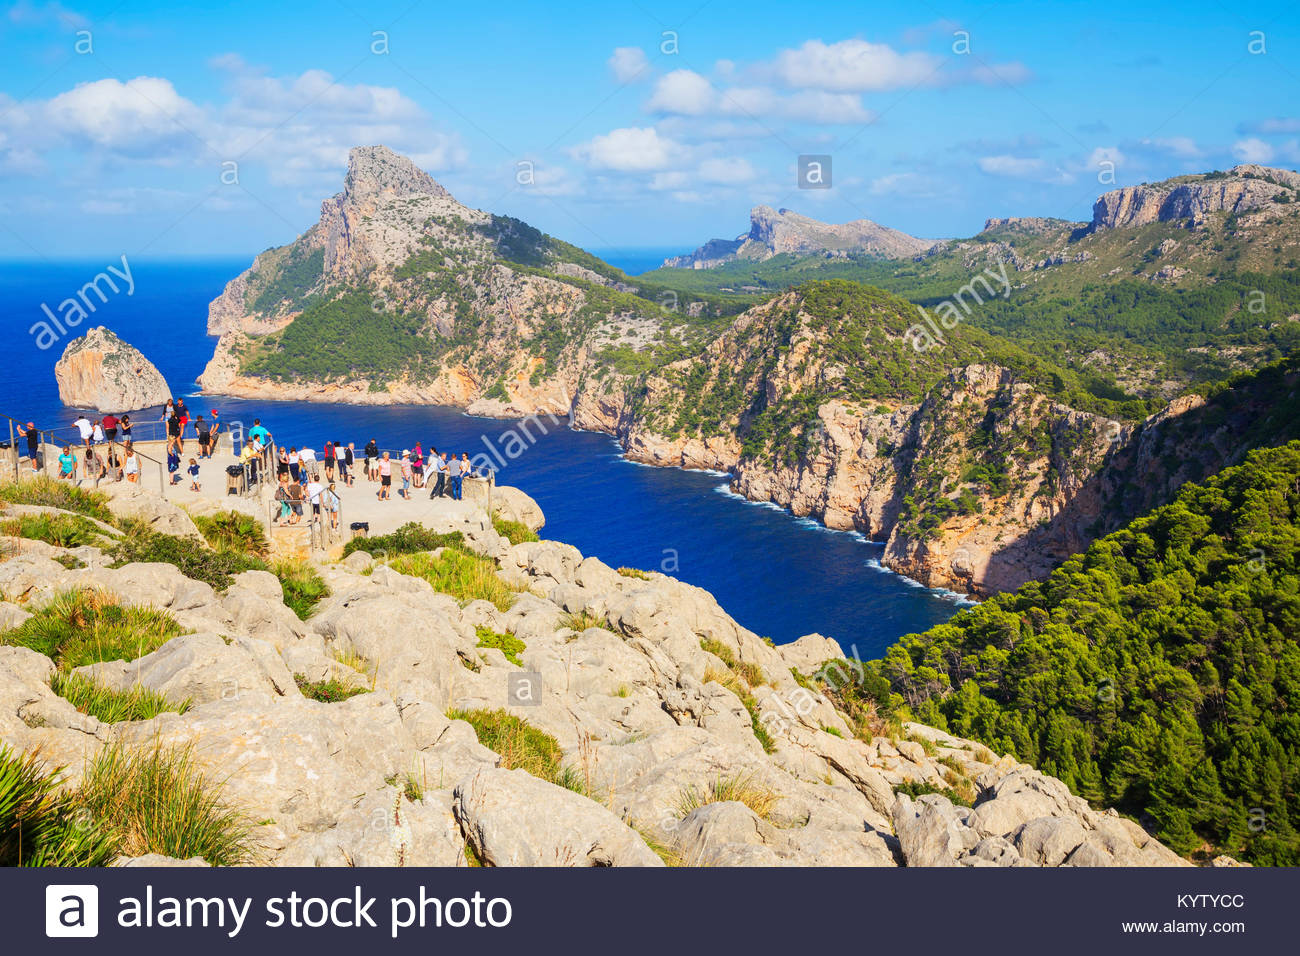 Cap de Formentor, Mallorca, Balearic Islands, Spain, Europe - Stock Image